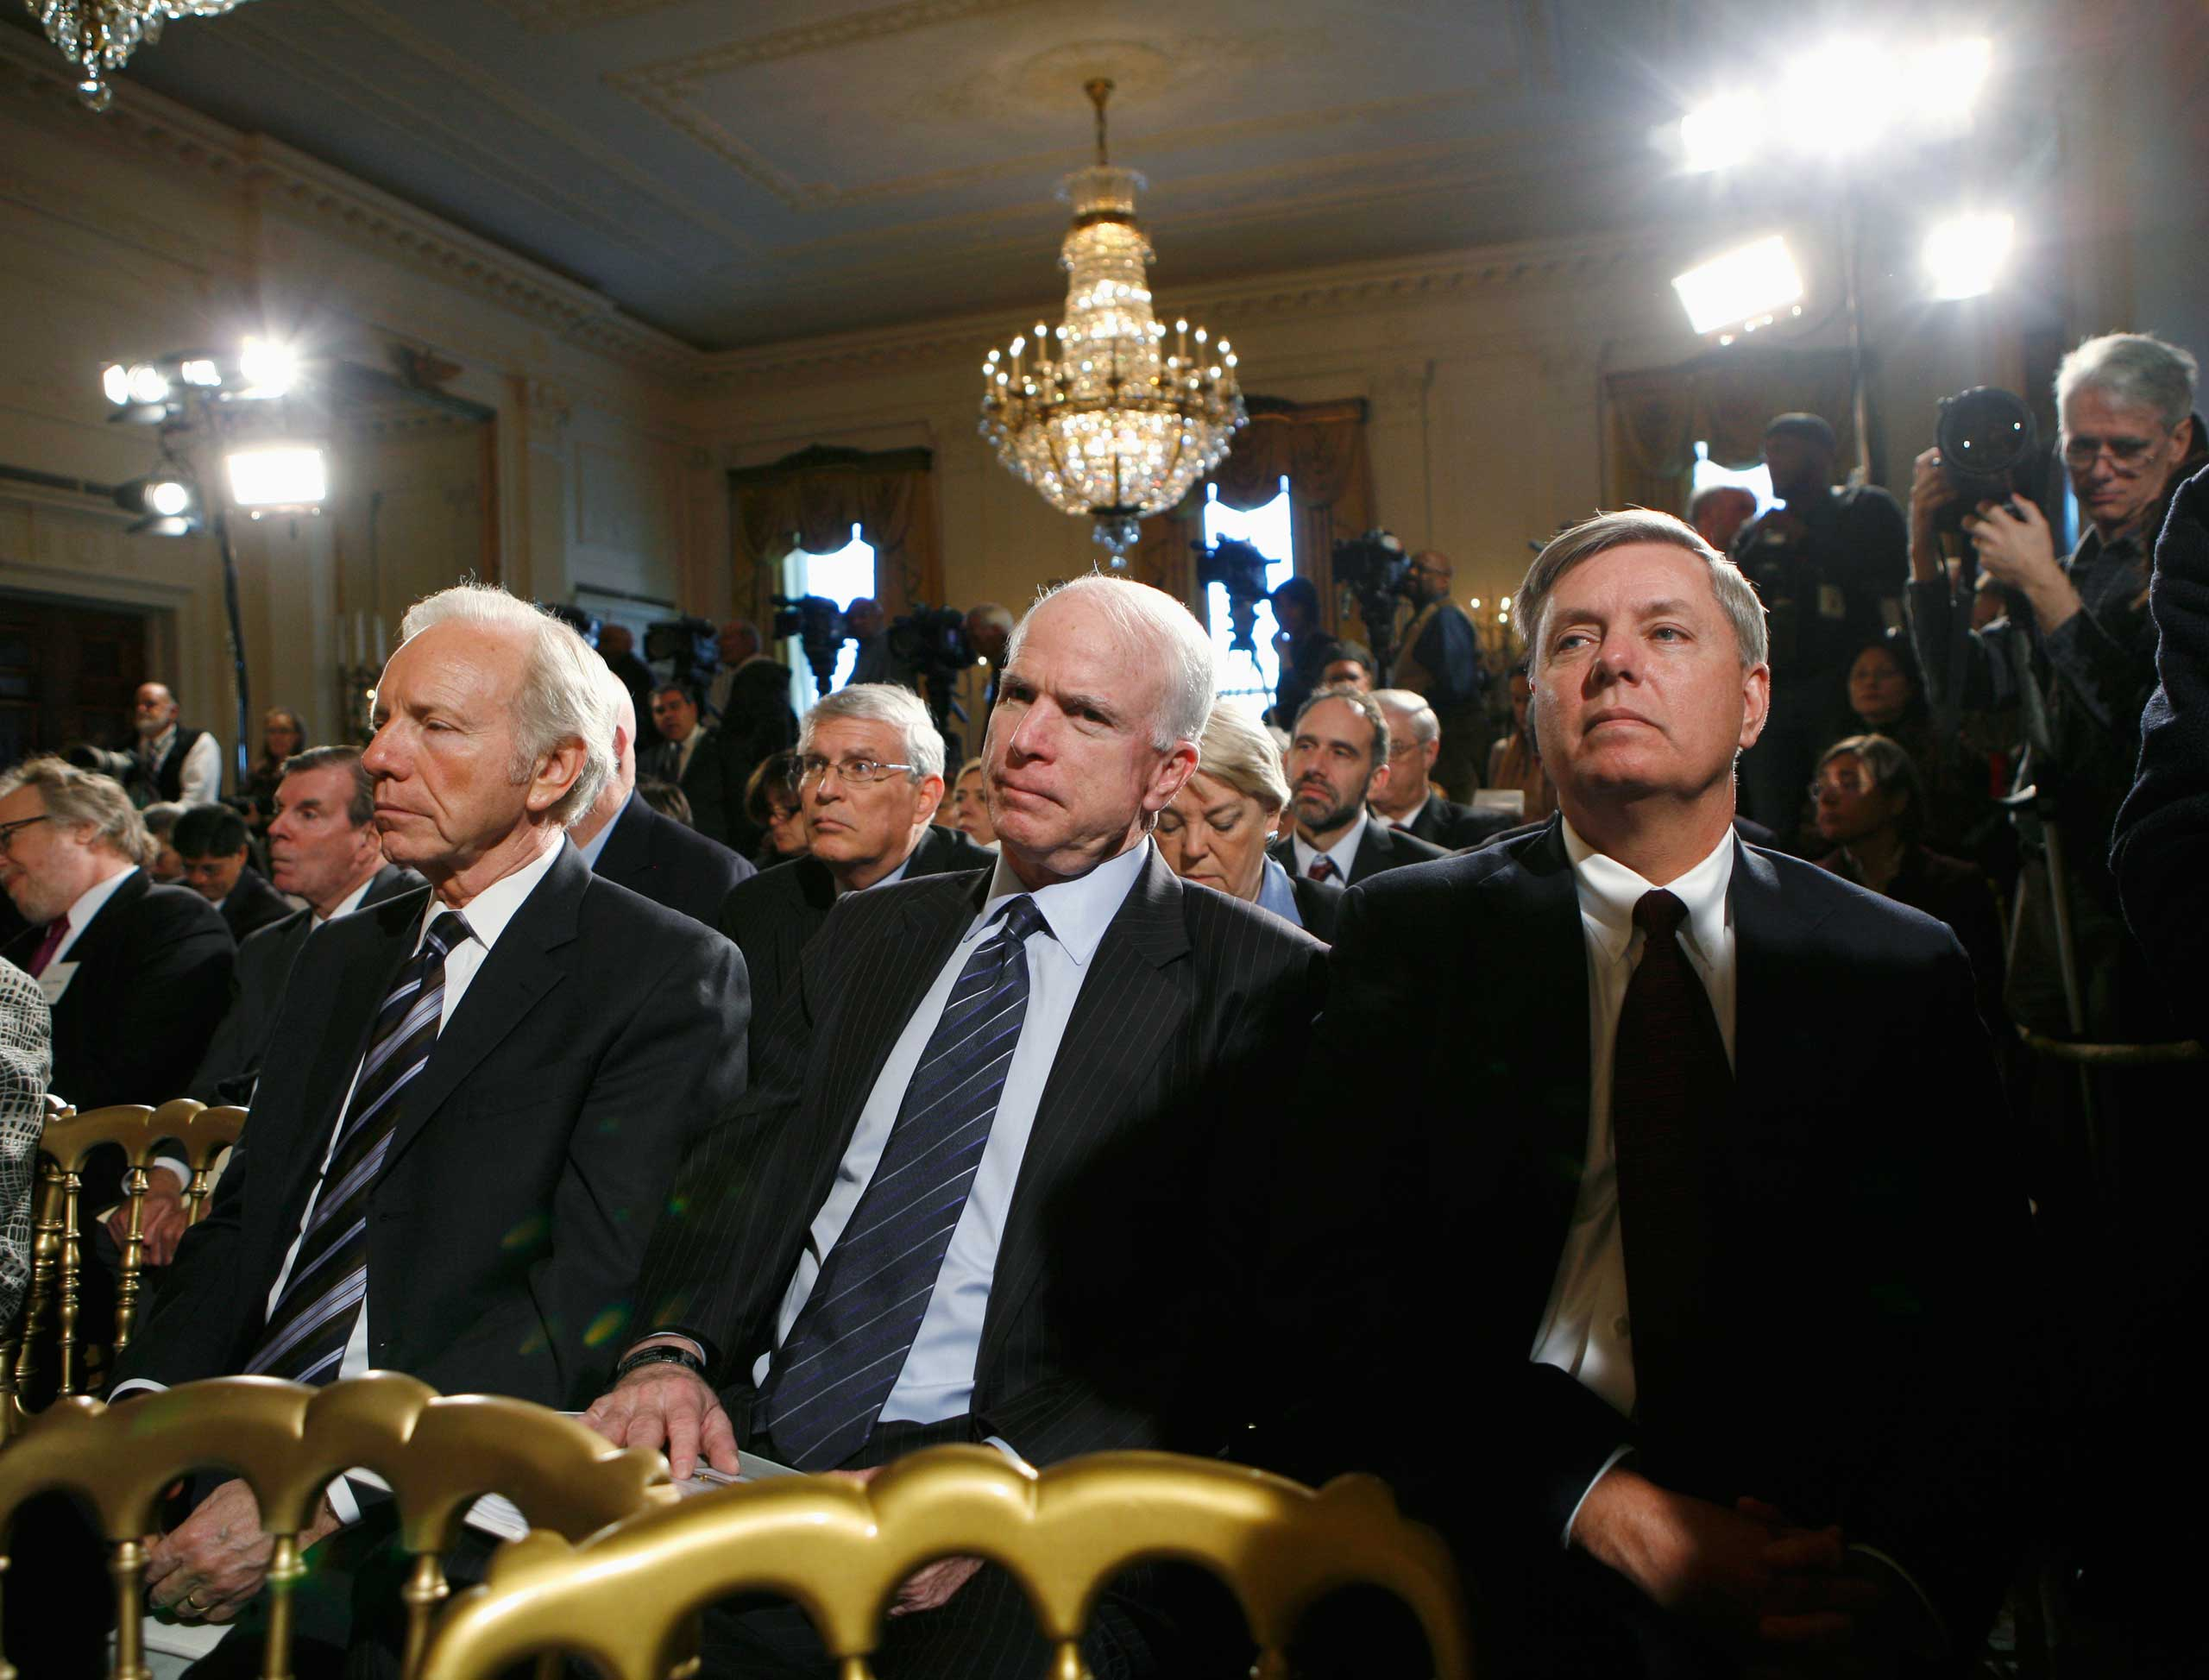 The three amigos, shown here at a White House summit in 2009, have something else in common: They've all run for president.